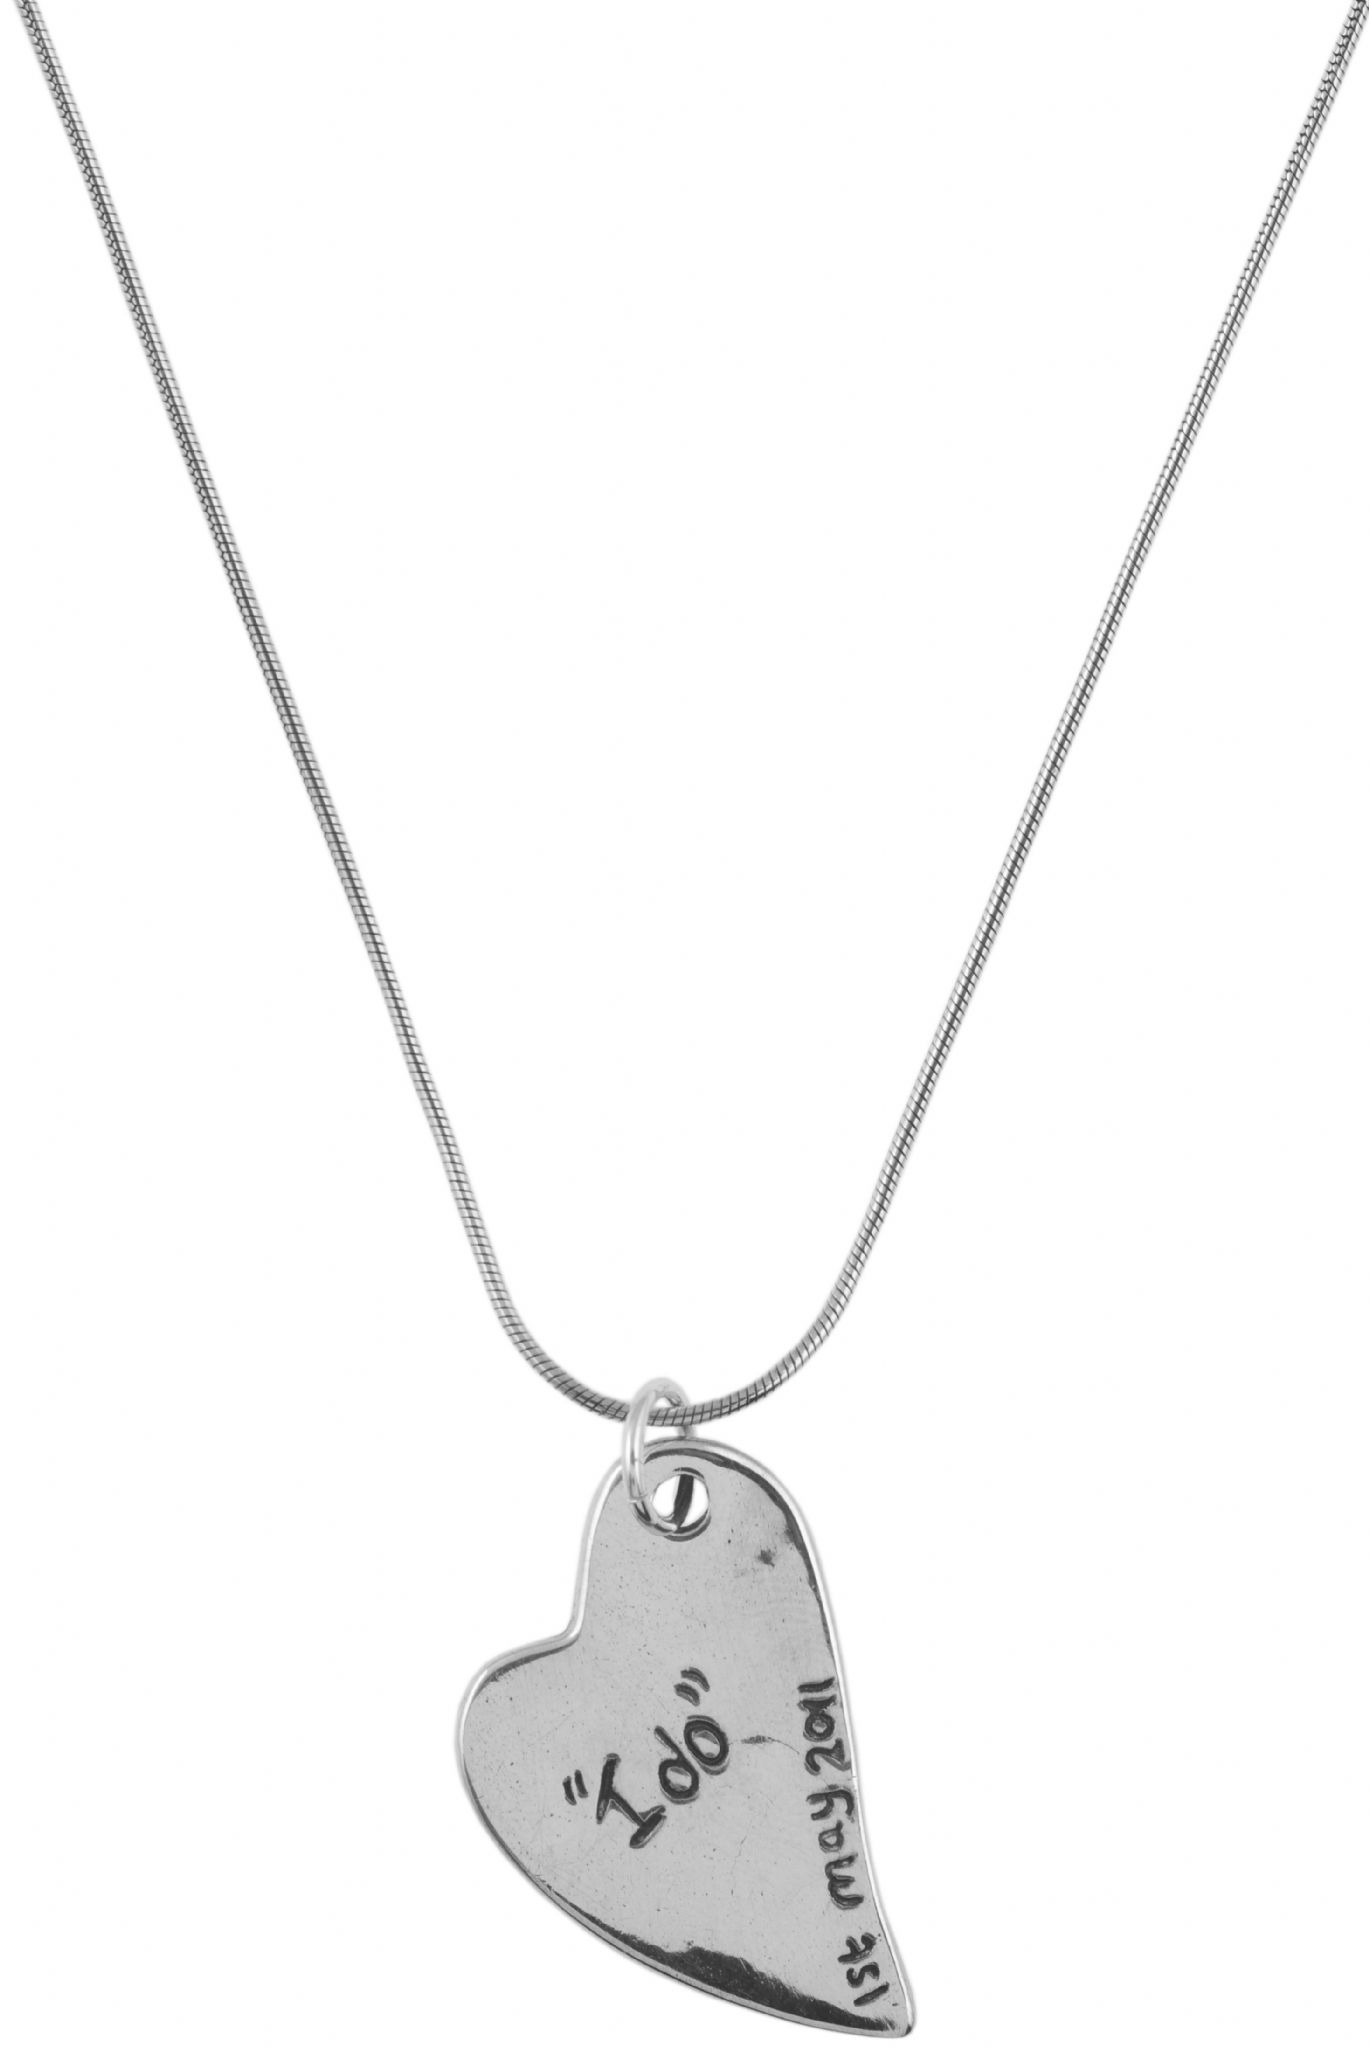 say fine the fingerprint moon by necklace products love anything il you engraved personalized to silver jewelry fullxfull family